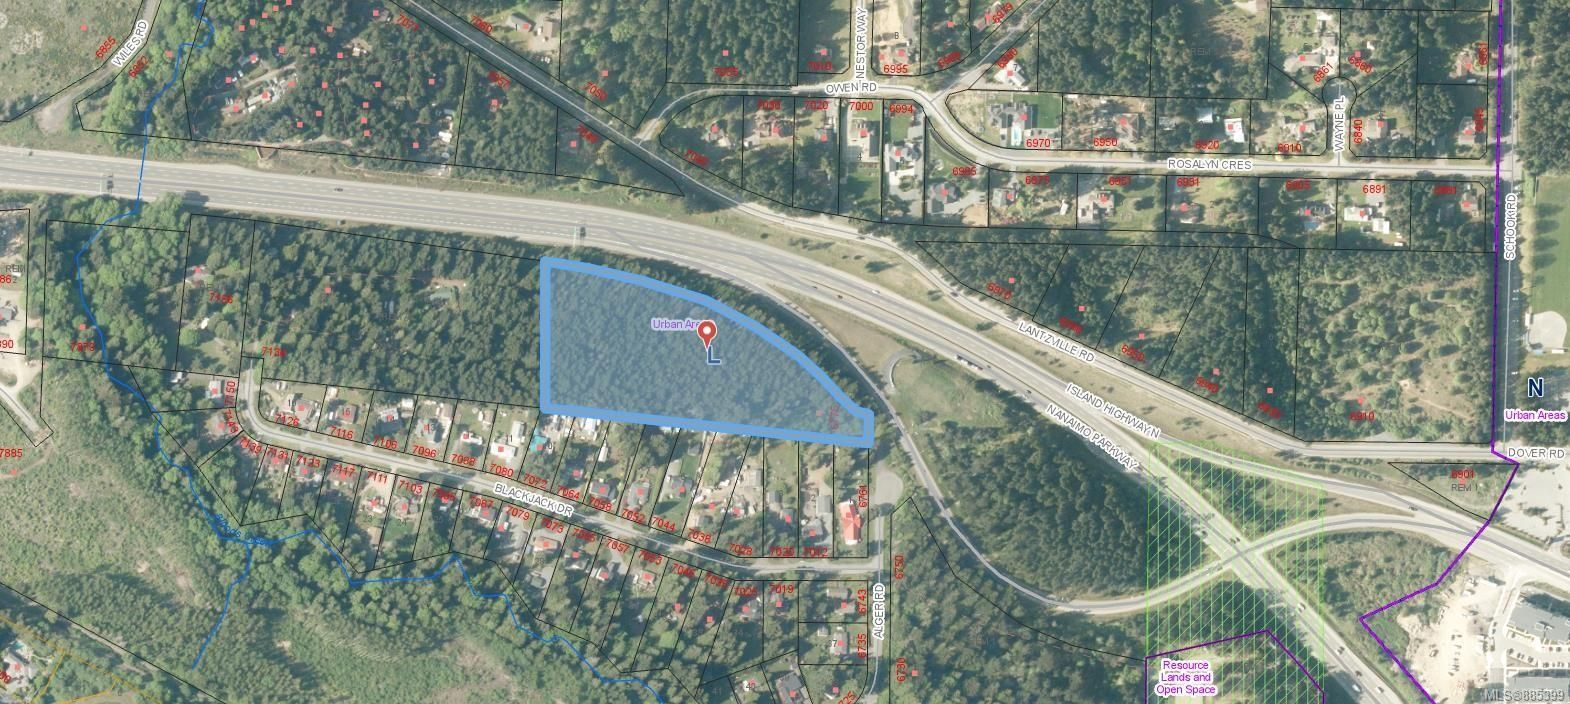 Main Photo: 6775 Alger Rd in : Na Upper Lantzville Unimproved Land for sale (Nanaimo)  : MLS®# 885399